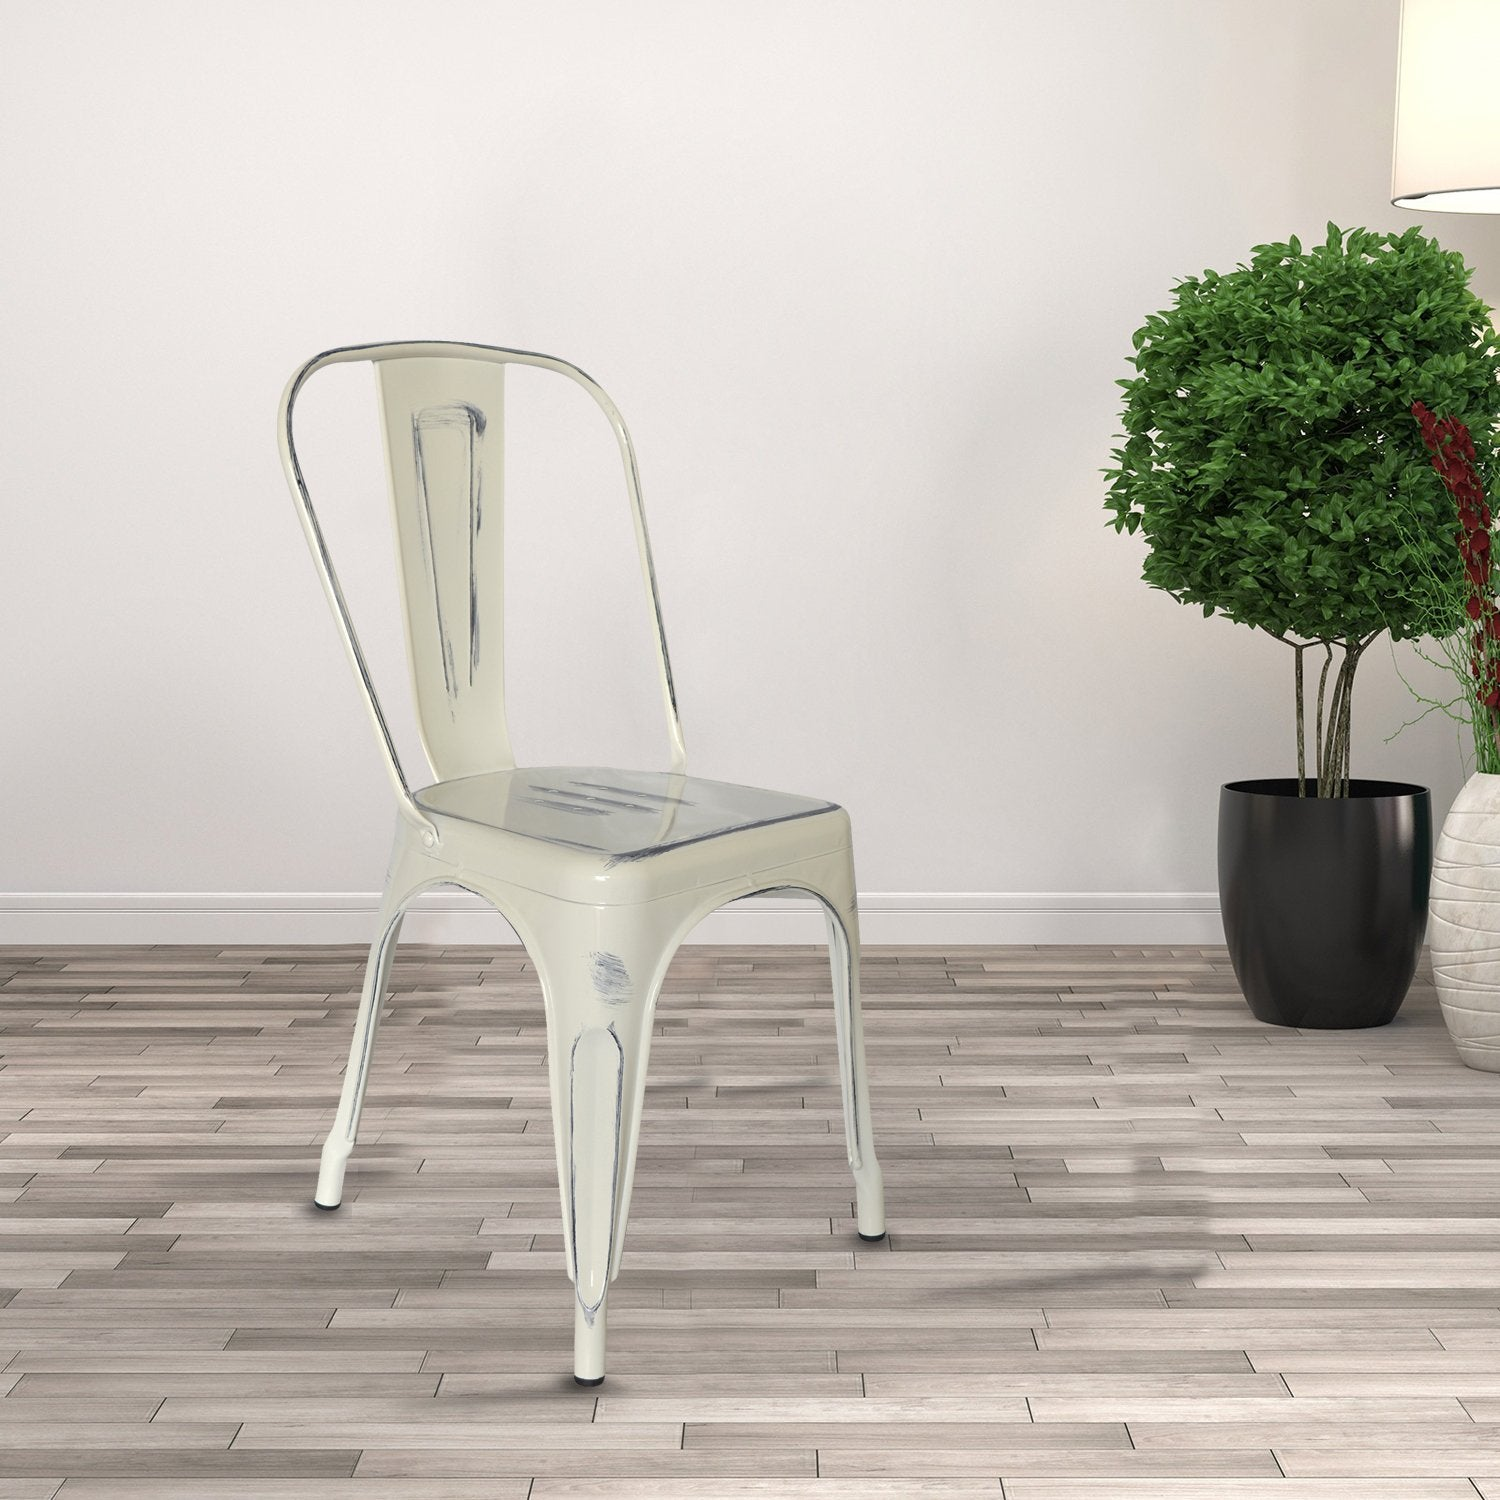 Café Au Lait Iron Chair from Teaktale Home Decors